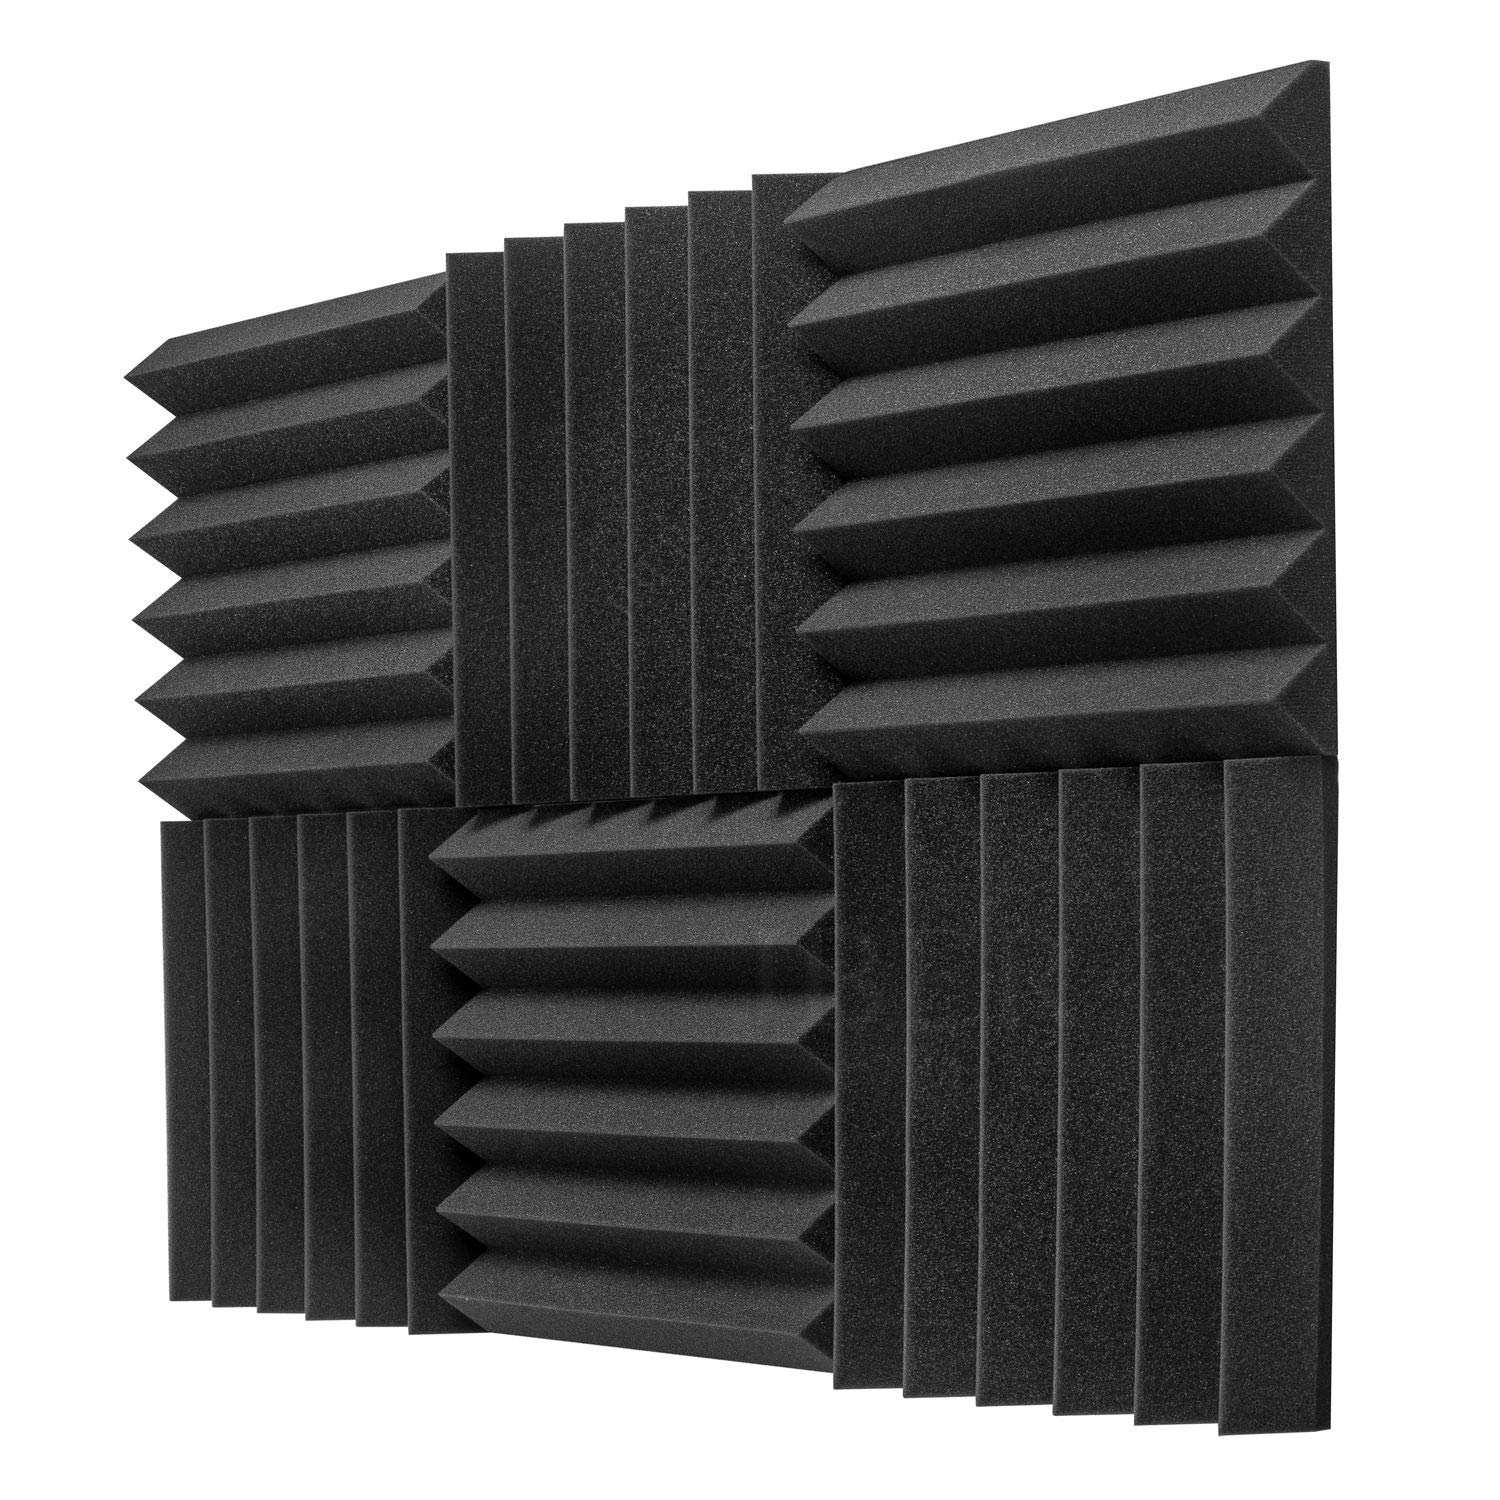 JBER 6 Pack Charcoal Acoustic Panels Studio Foam Wedges Fireproof Soundproof Padding Wall Panels 2'' X 12'' X 12''